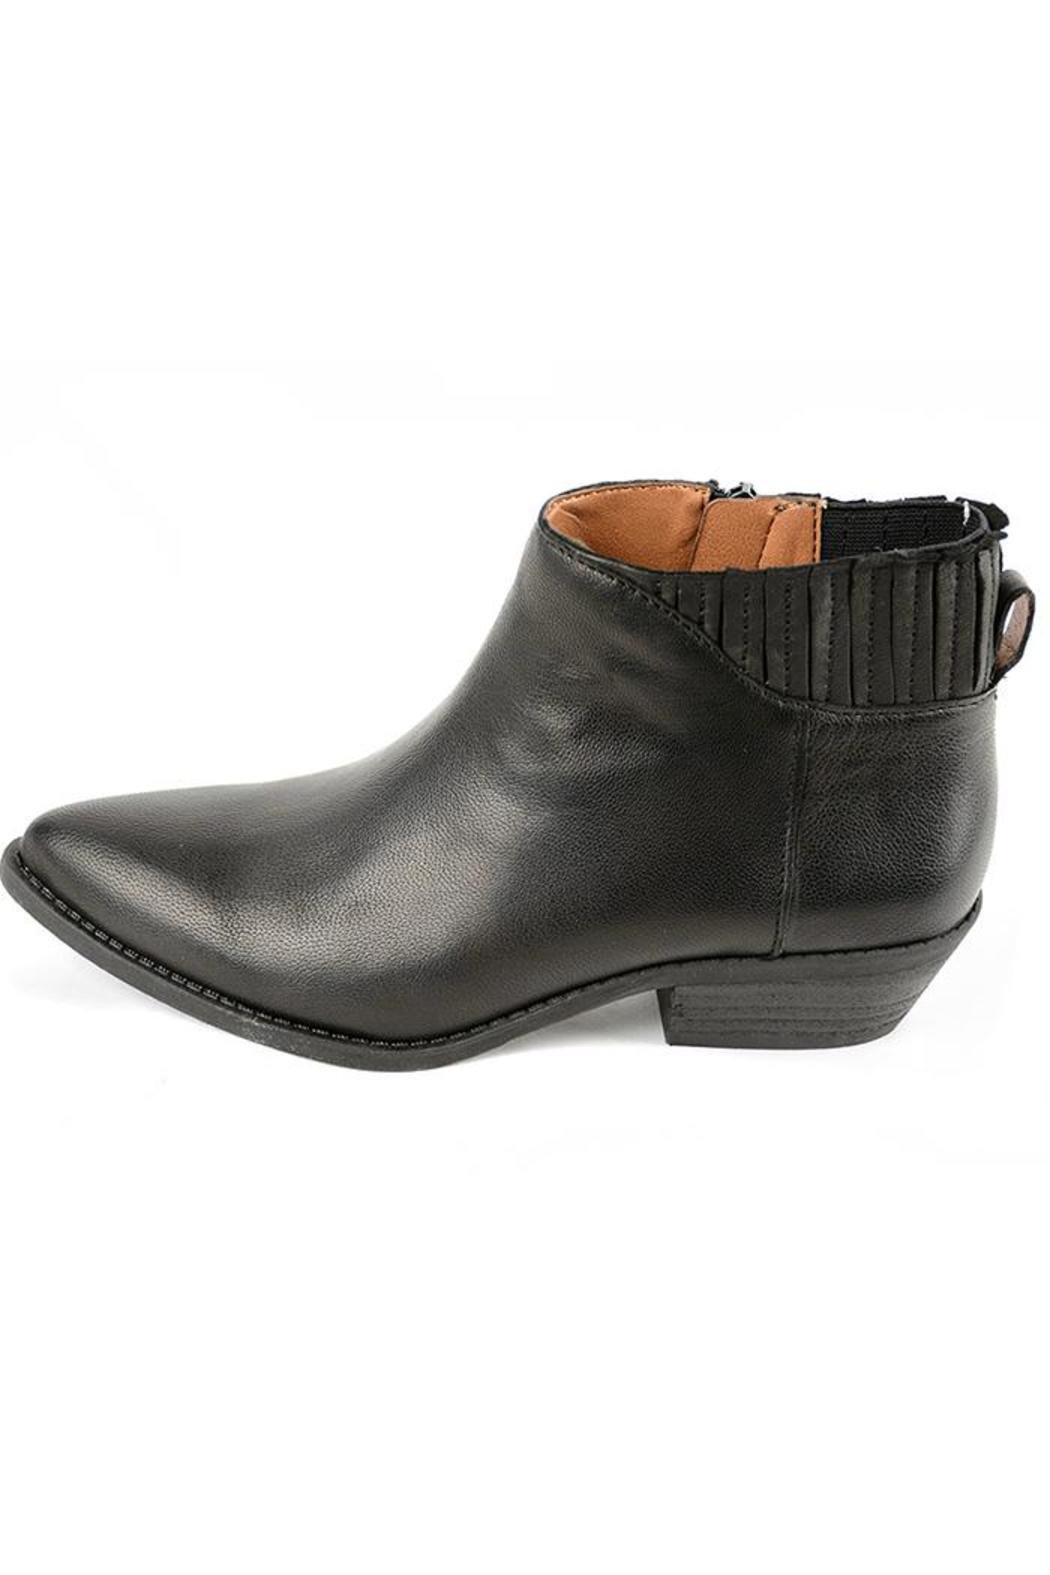 b19f877de8a Lucky Brand Jemm Ankle Boot from Toronto by heel boy — Shoptiques